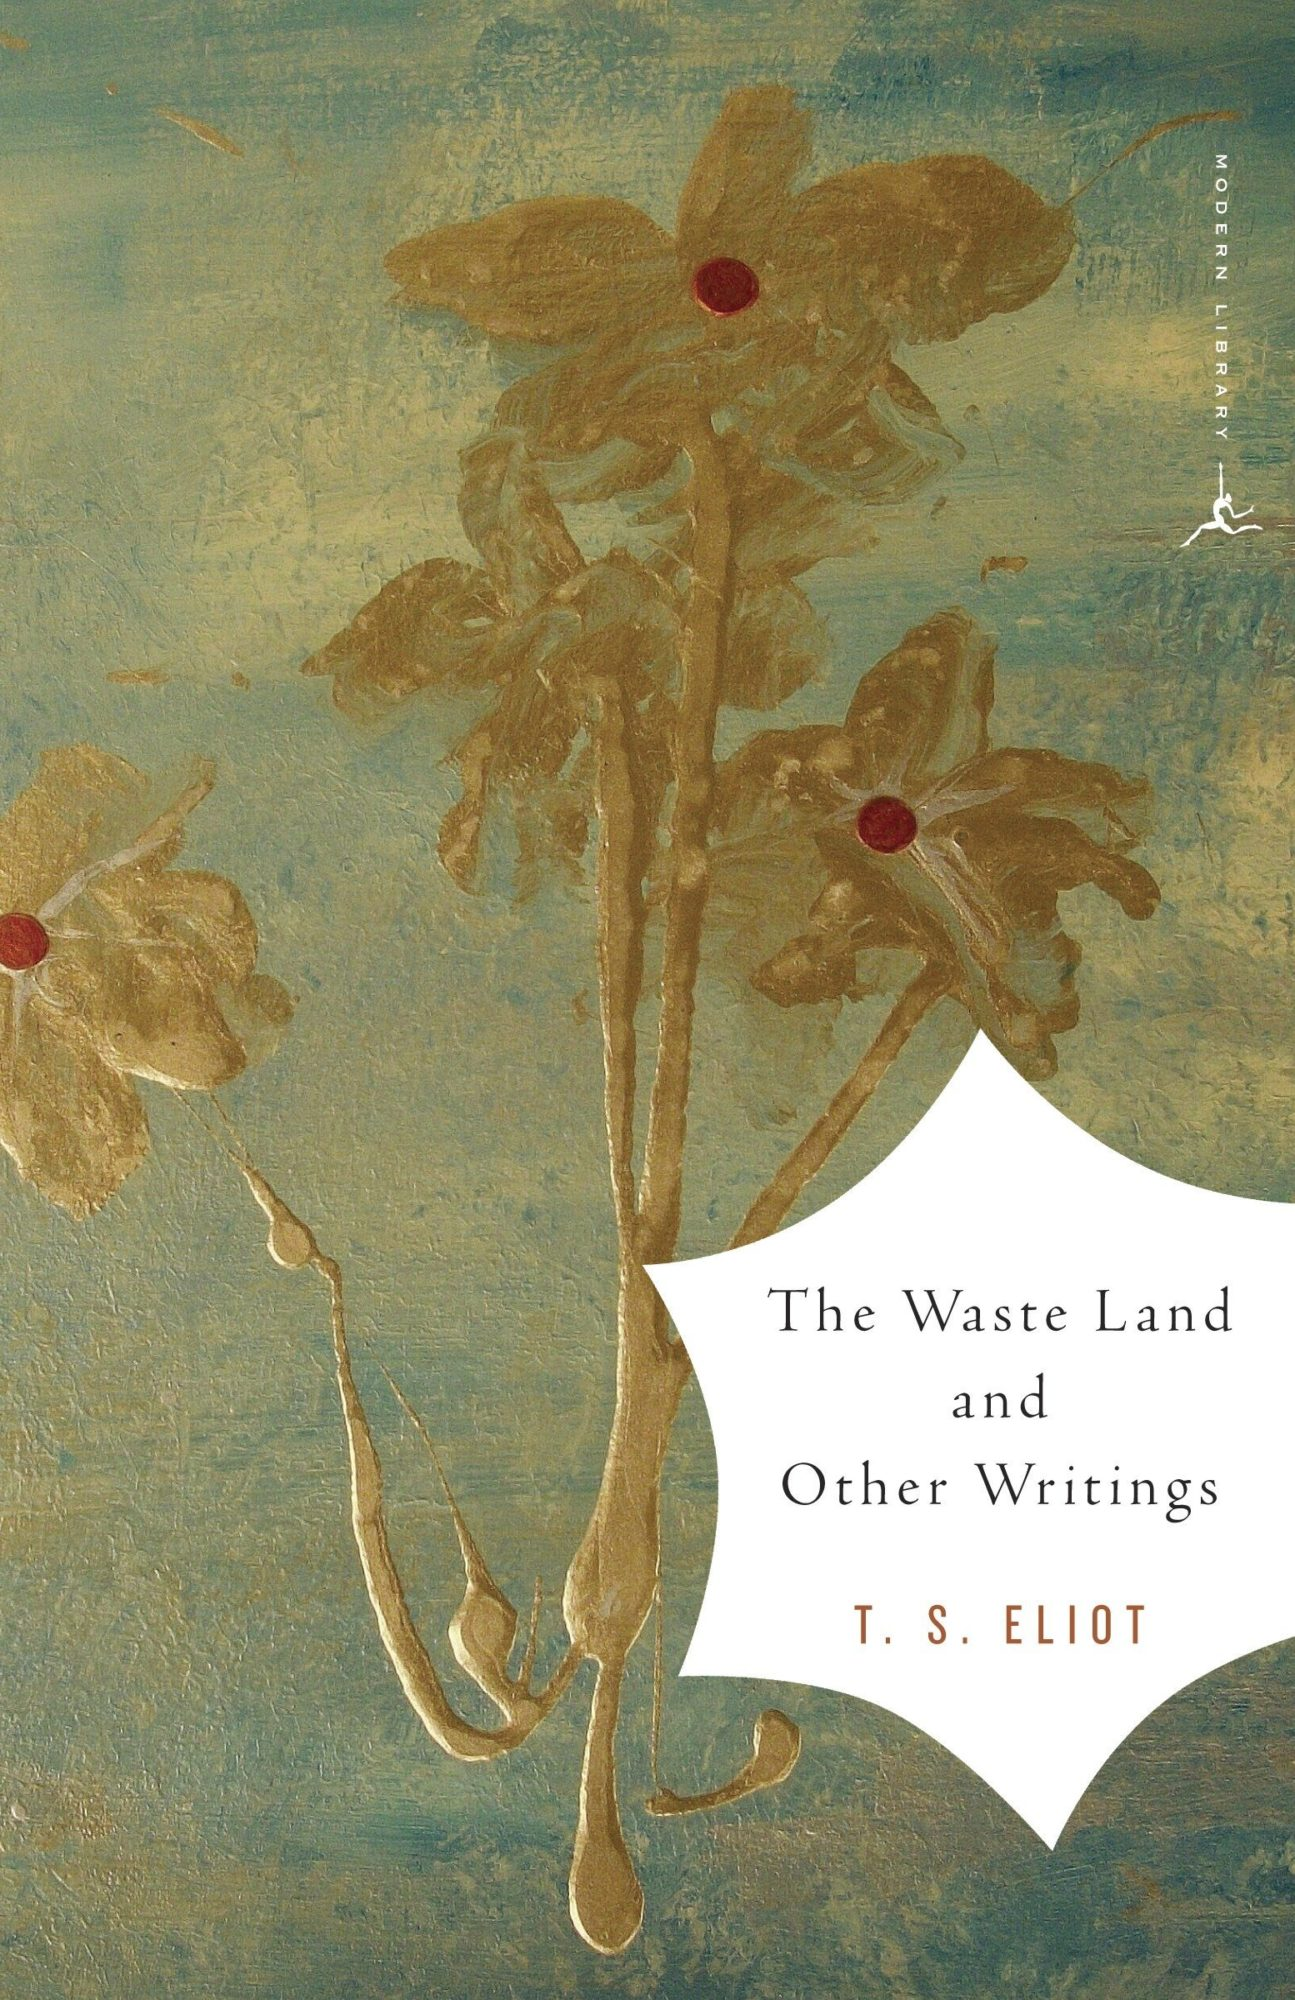 Cover for T.S. Eliot's The Waste Land